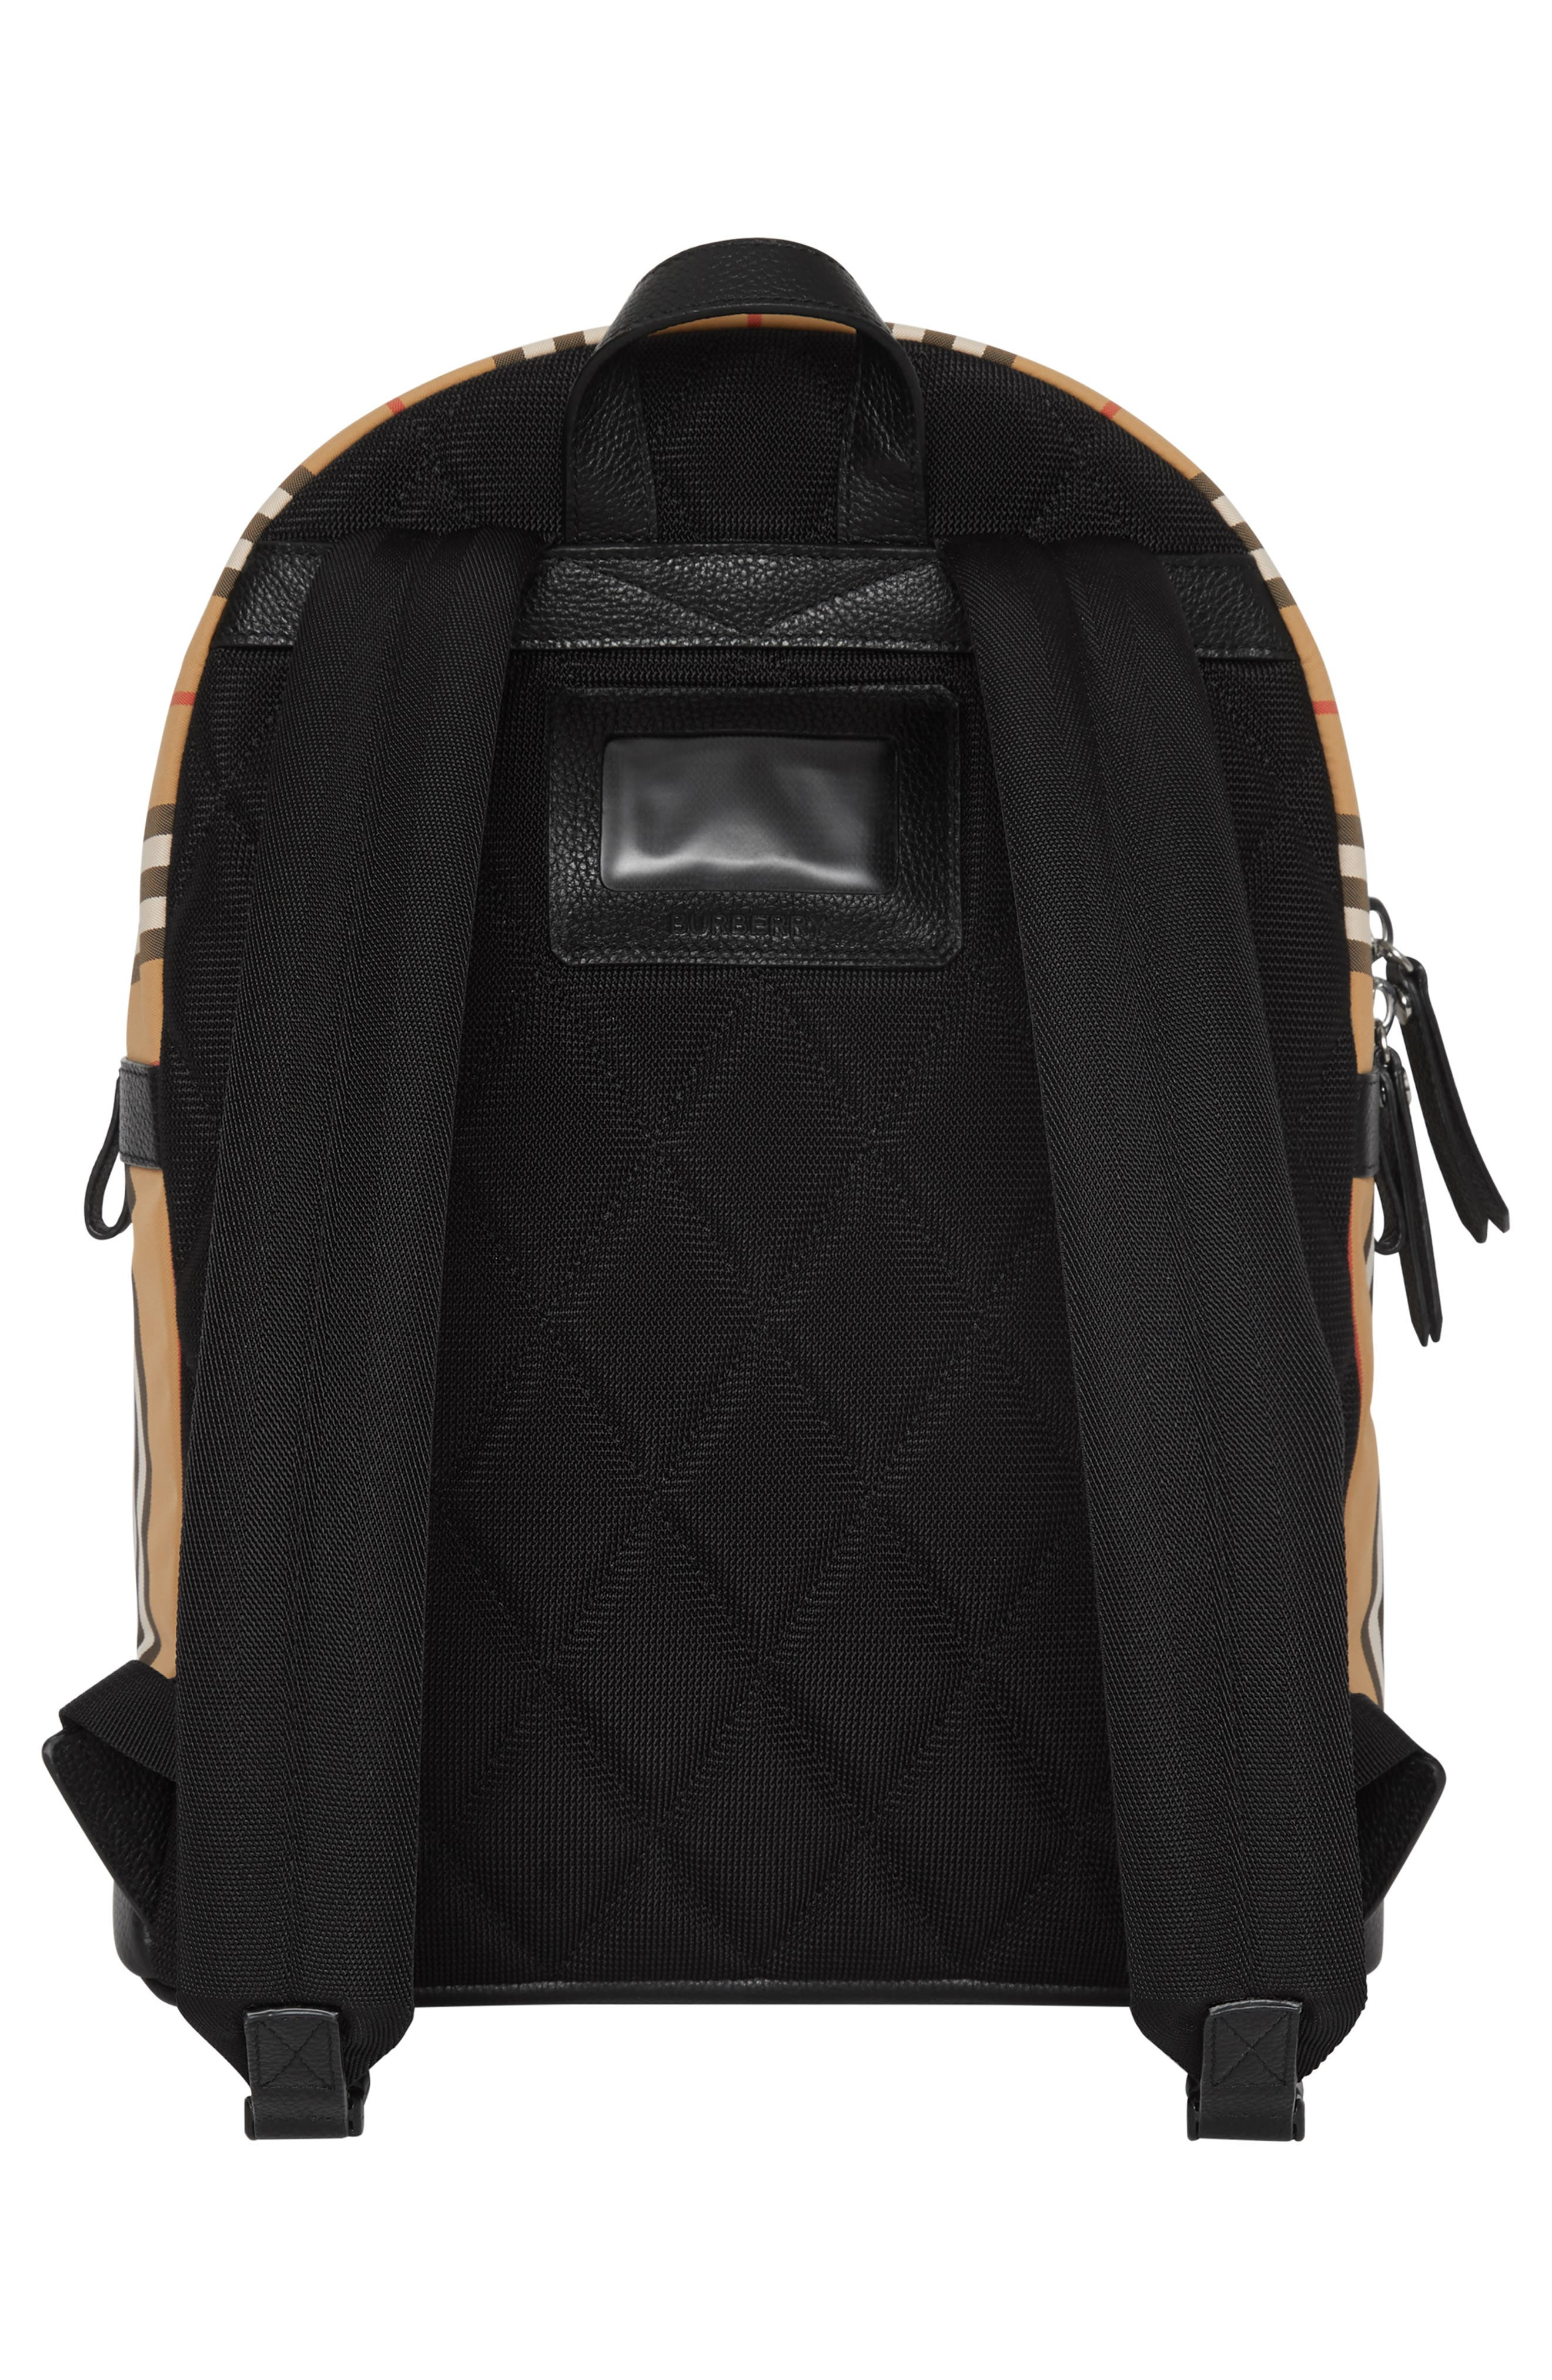 BURBERRY, Nico Archive Stripe Backpack, Alternate thumbnail 2, color, ARCHIVE BEIGE